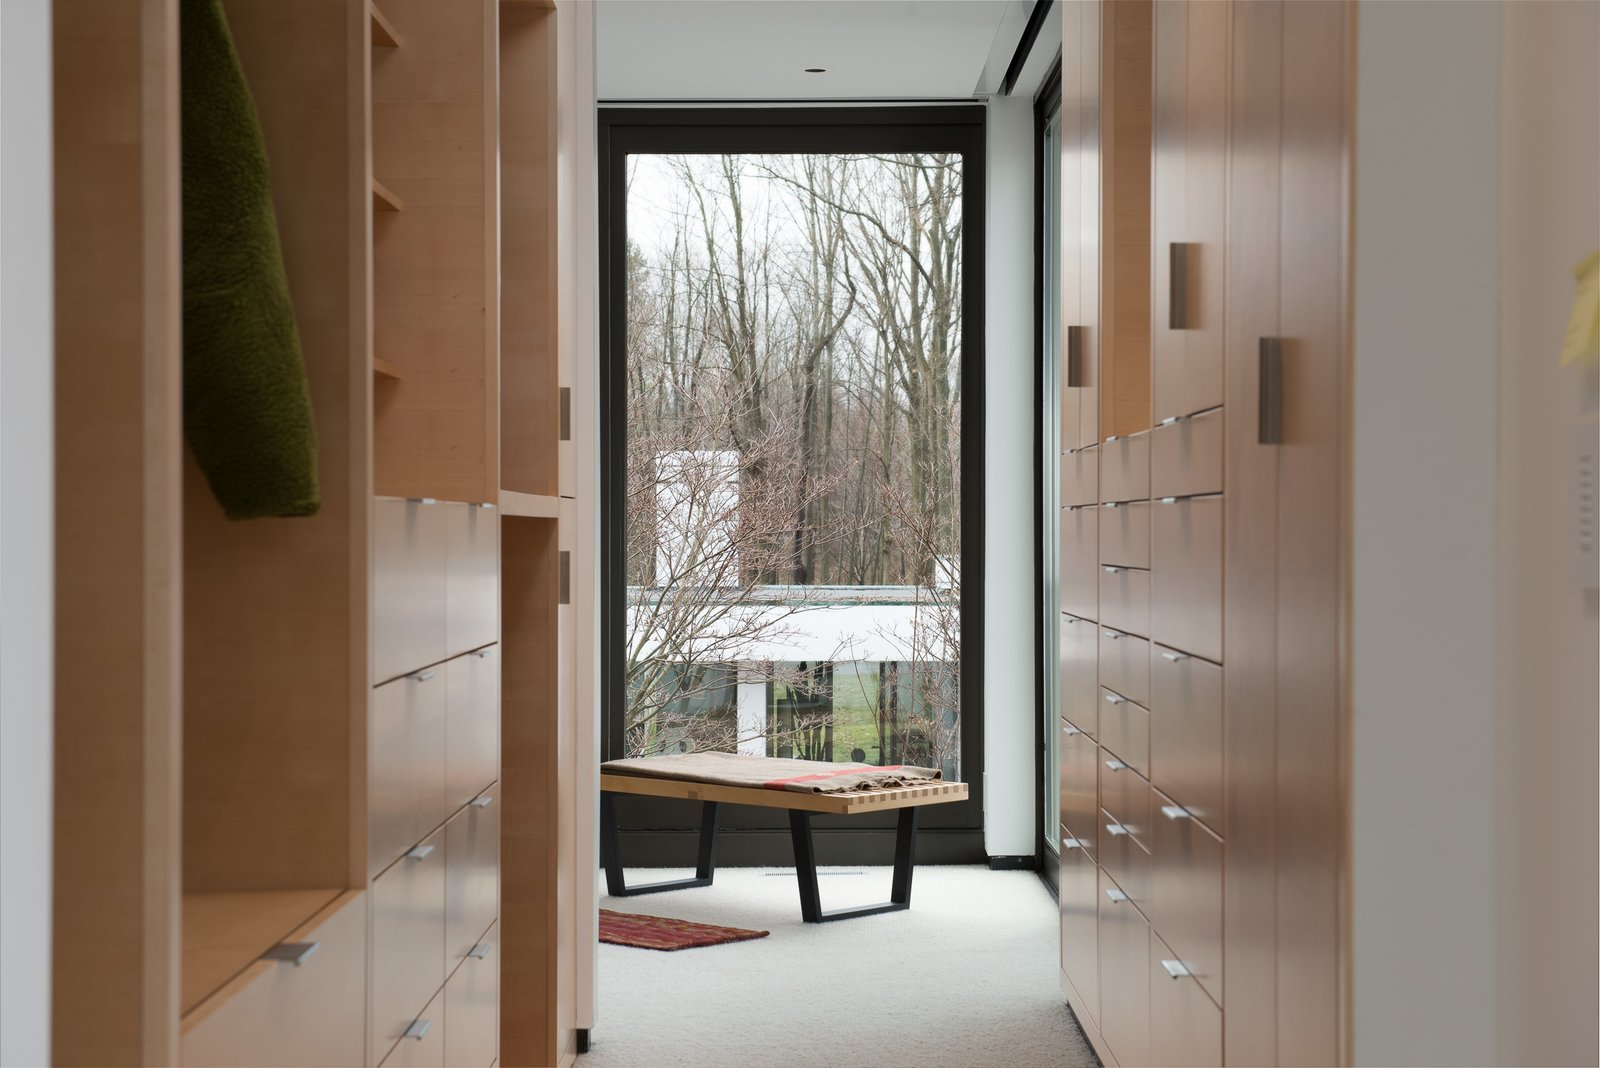 Open walk-in closet Tagged: Bedroom. House in the Woods by Kim Smith